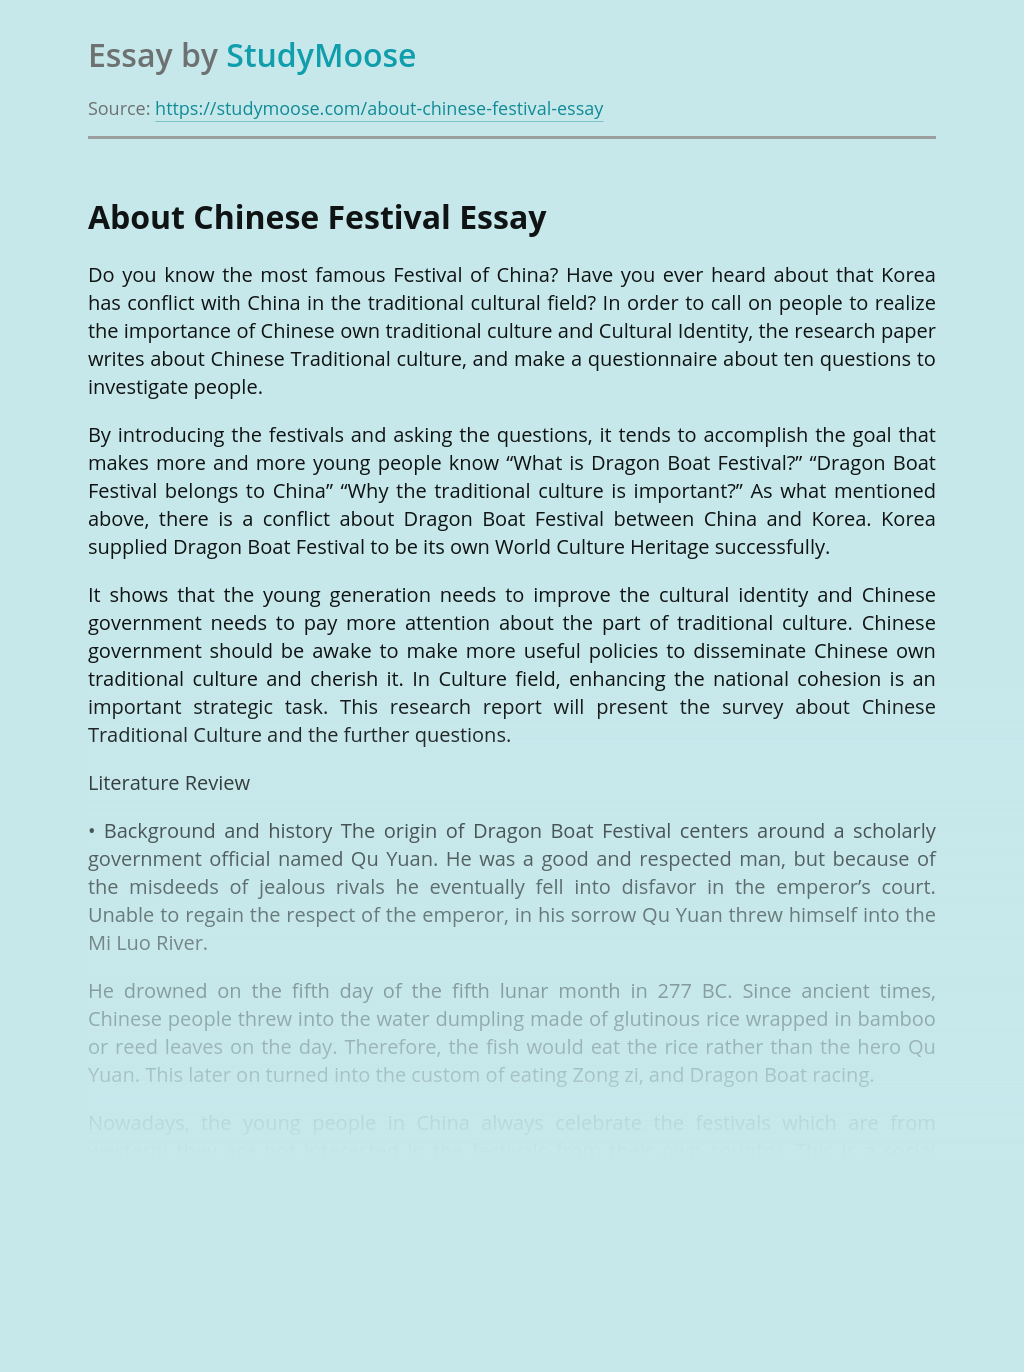 About Chinese Festival